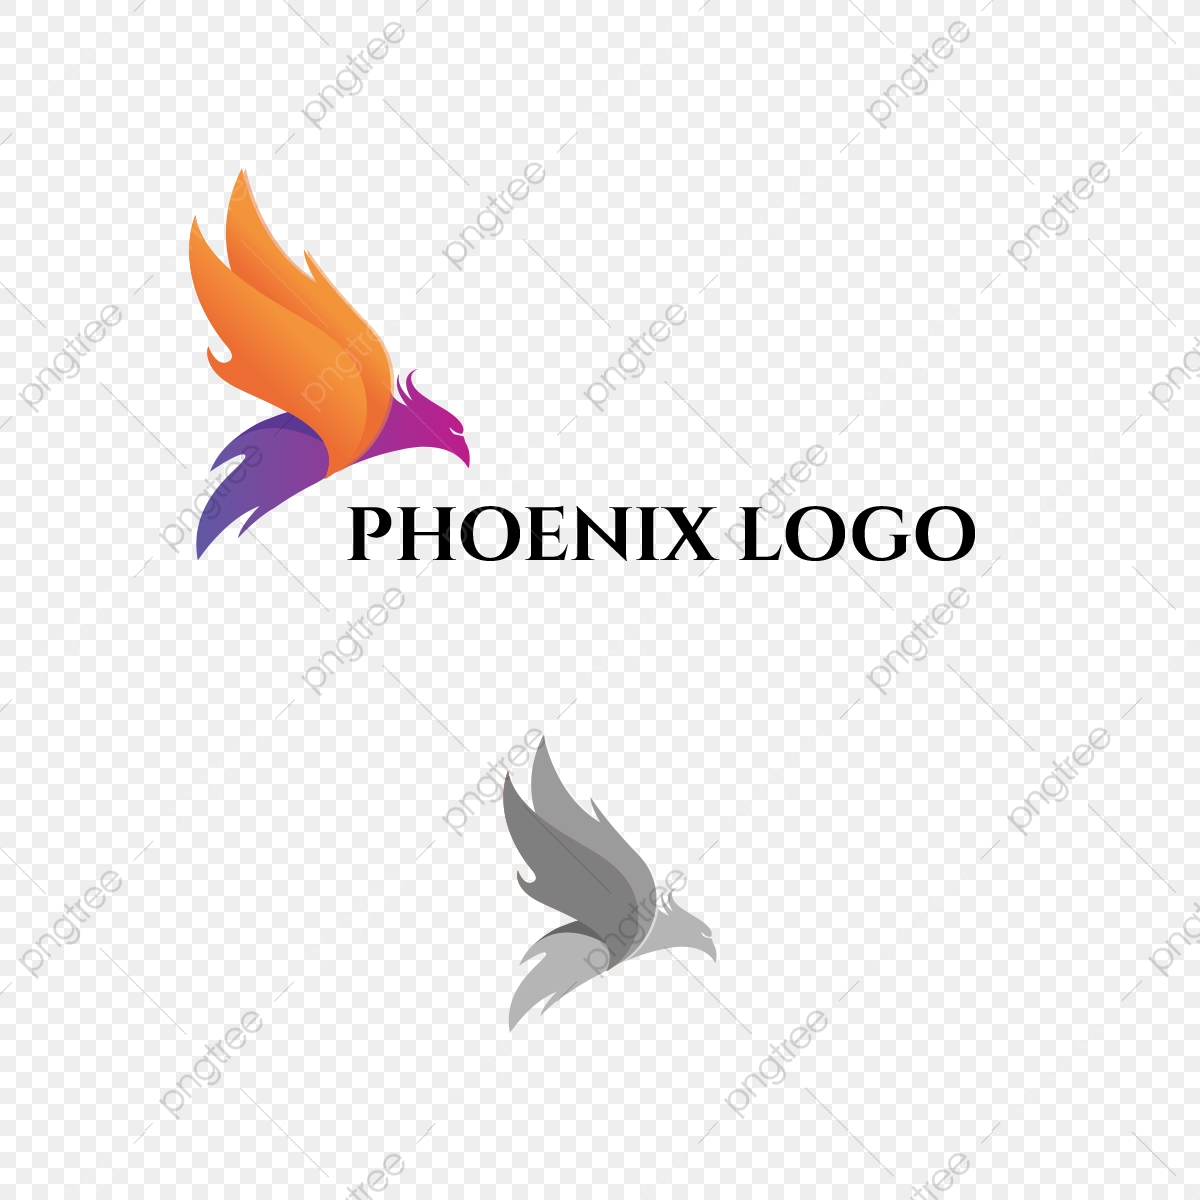 Phoenix Bird Logo Design Template For Free Download On Pngtree